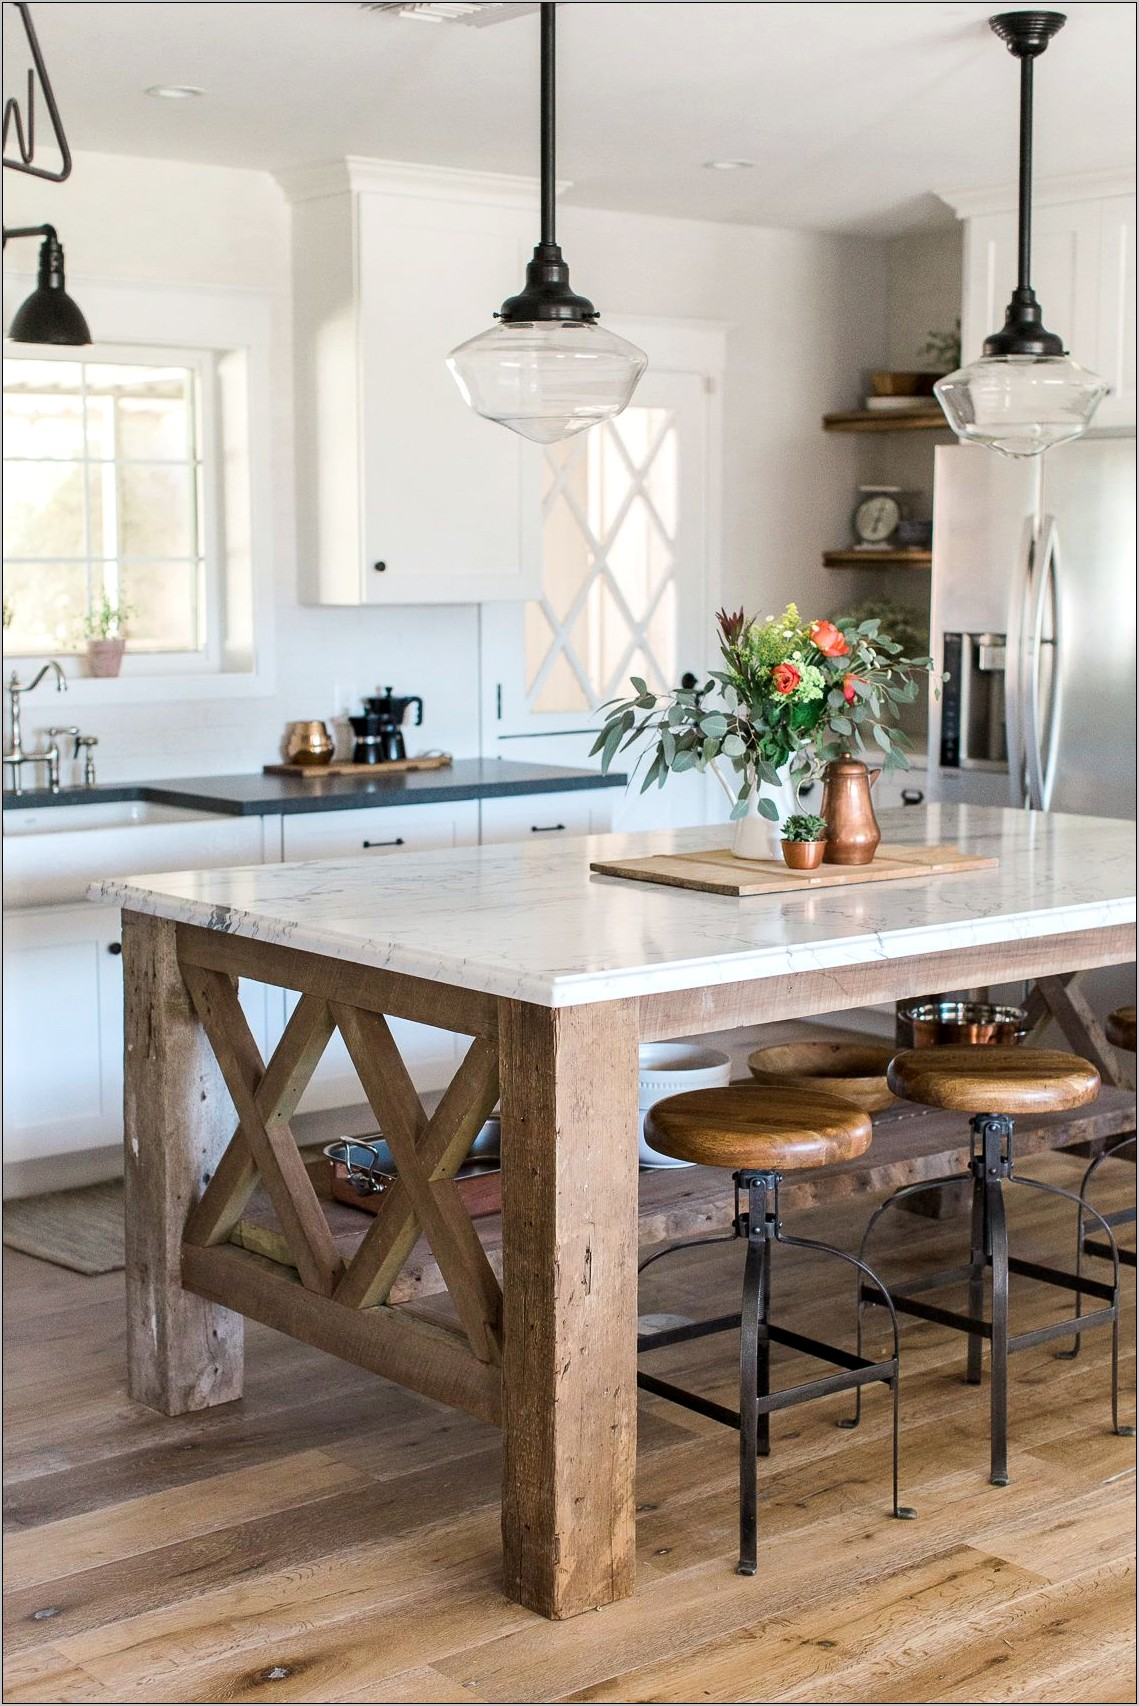 Best Barnwood Decor To Top Kitchen Cabinets